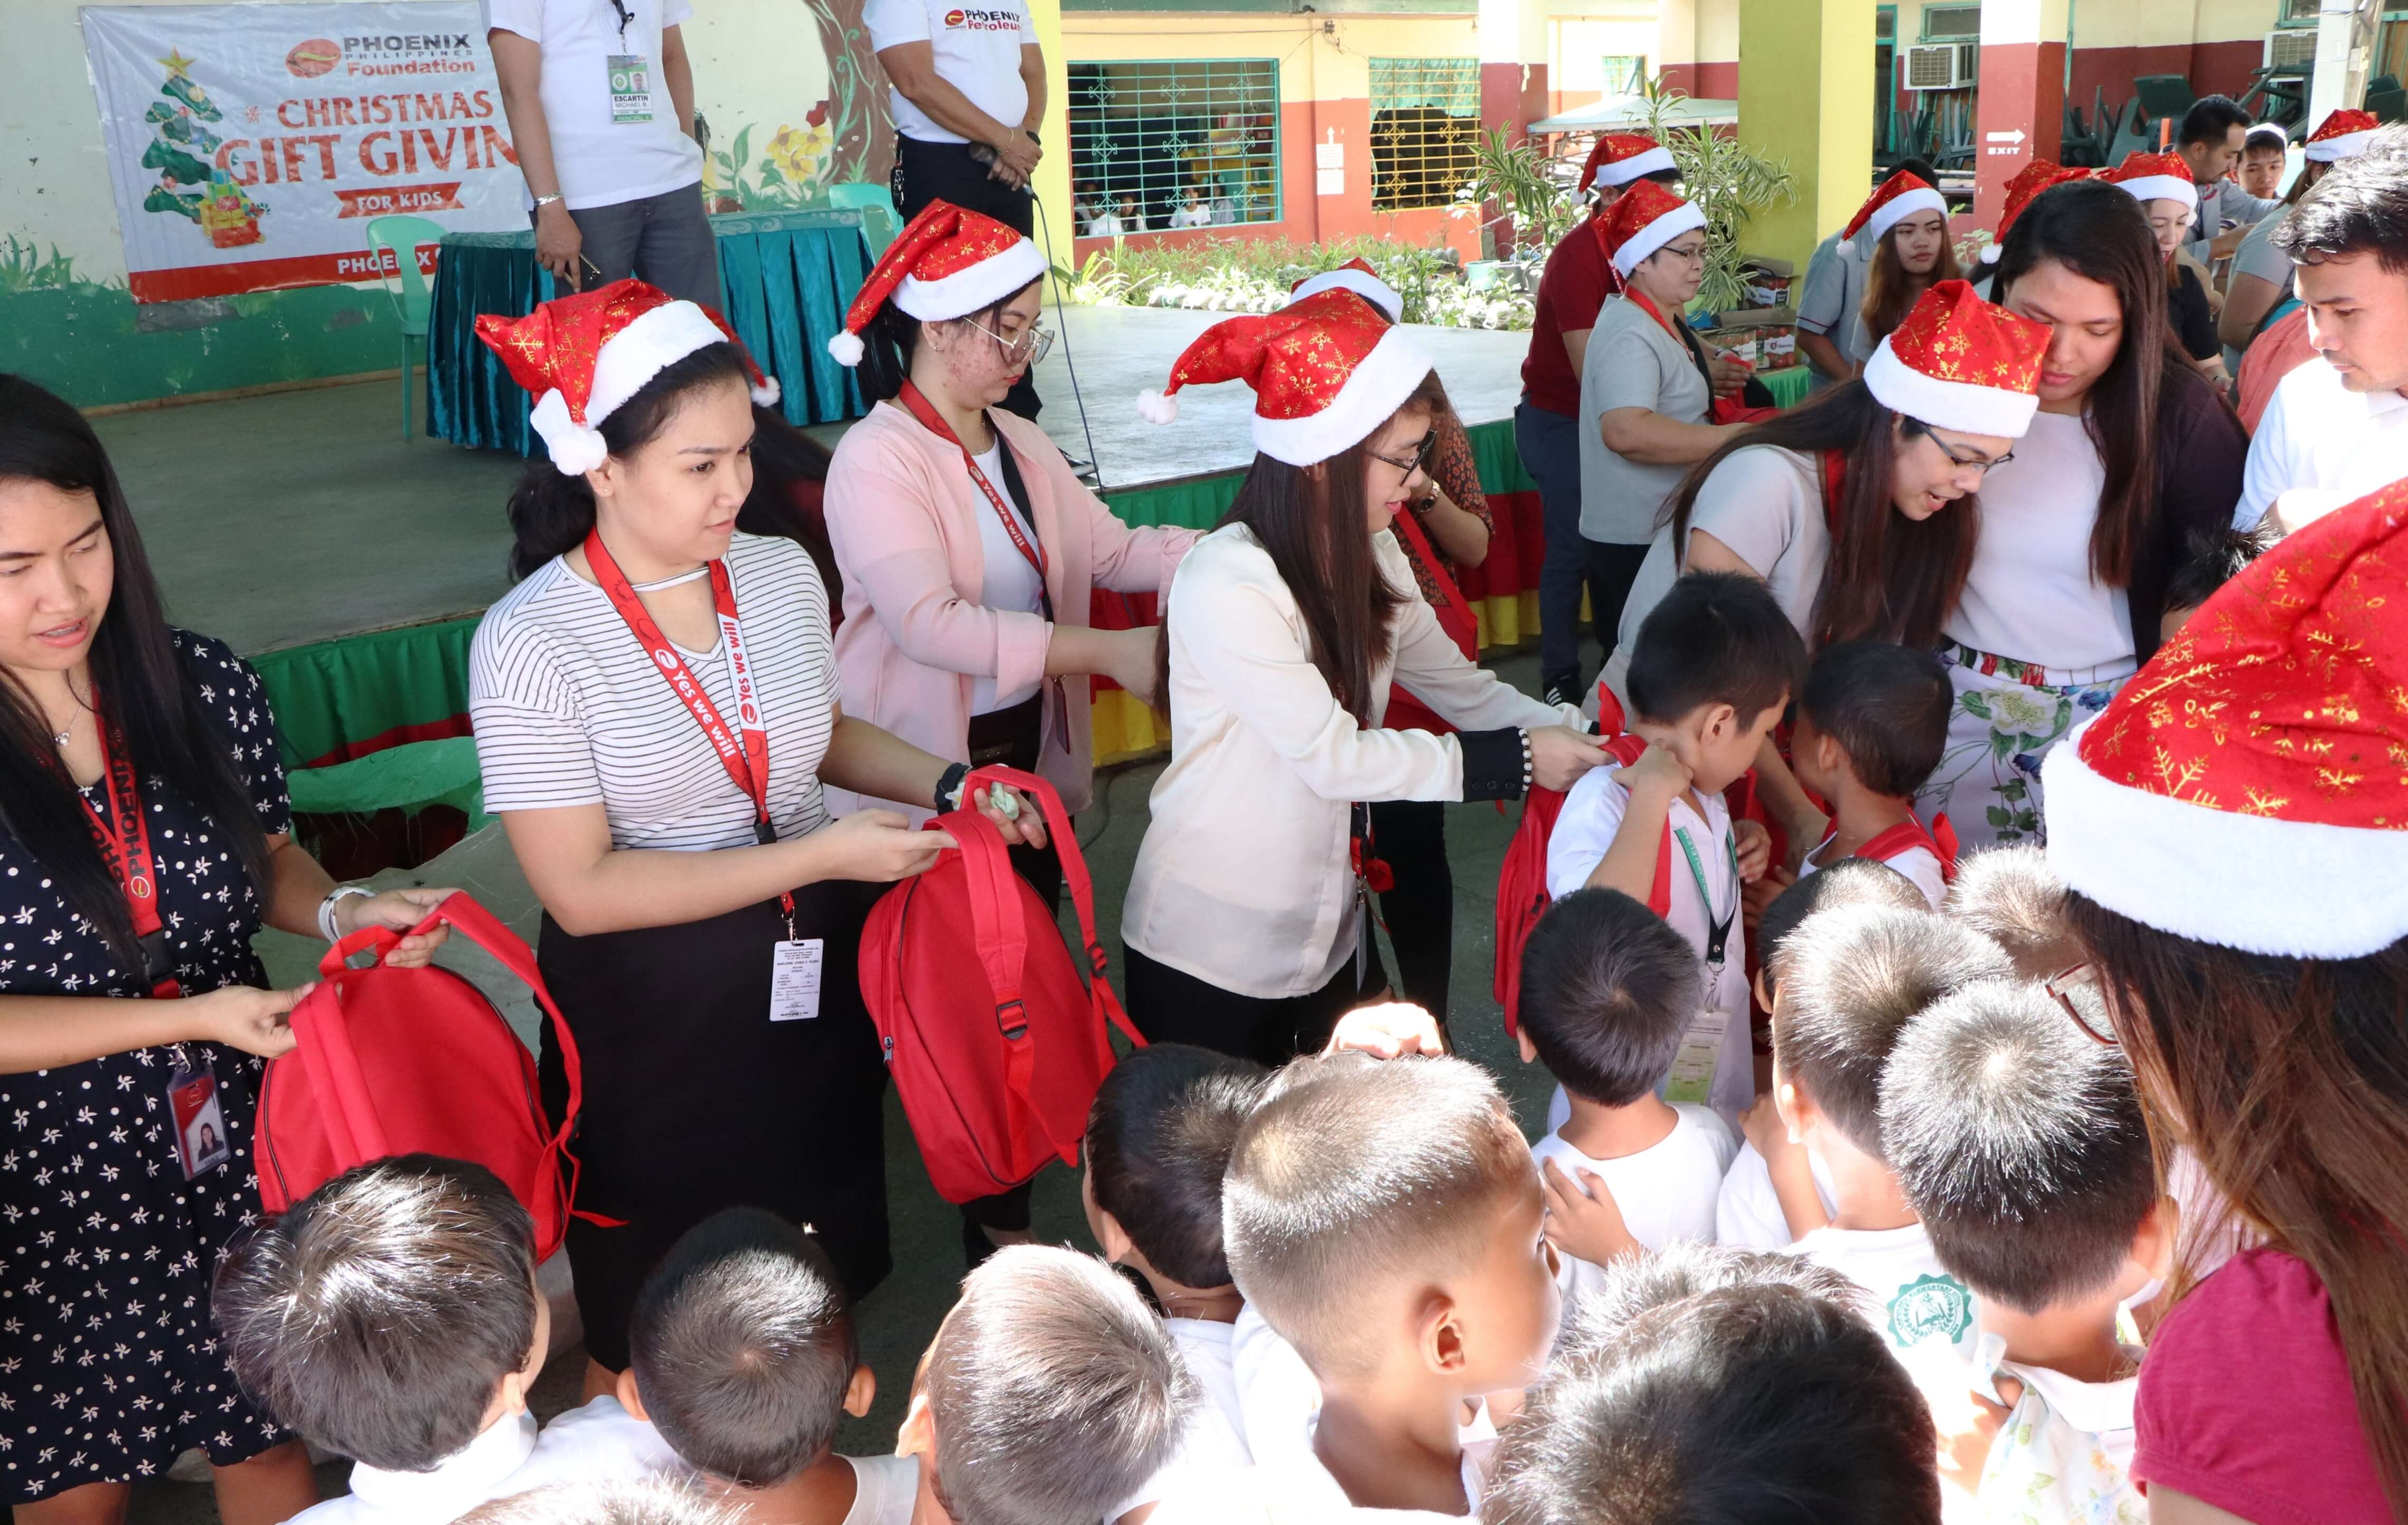 Christmas Gift Giving.Phoenix Brings Smiles To Over 4 000 Kids With Christmas Gift